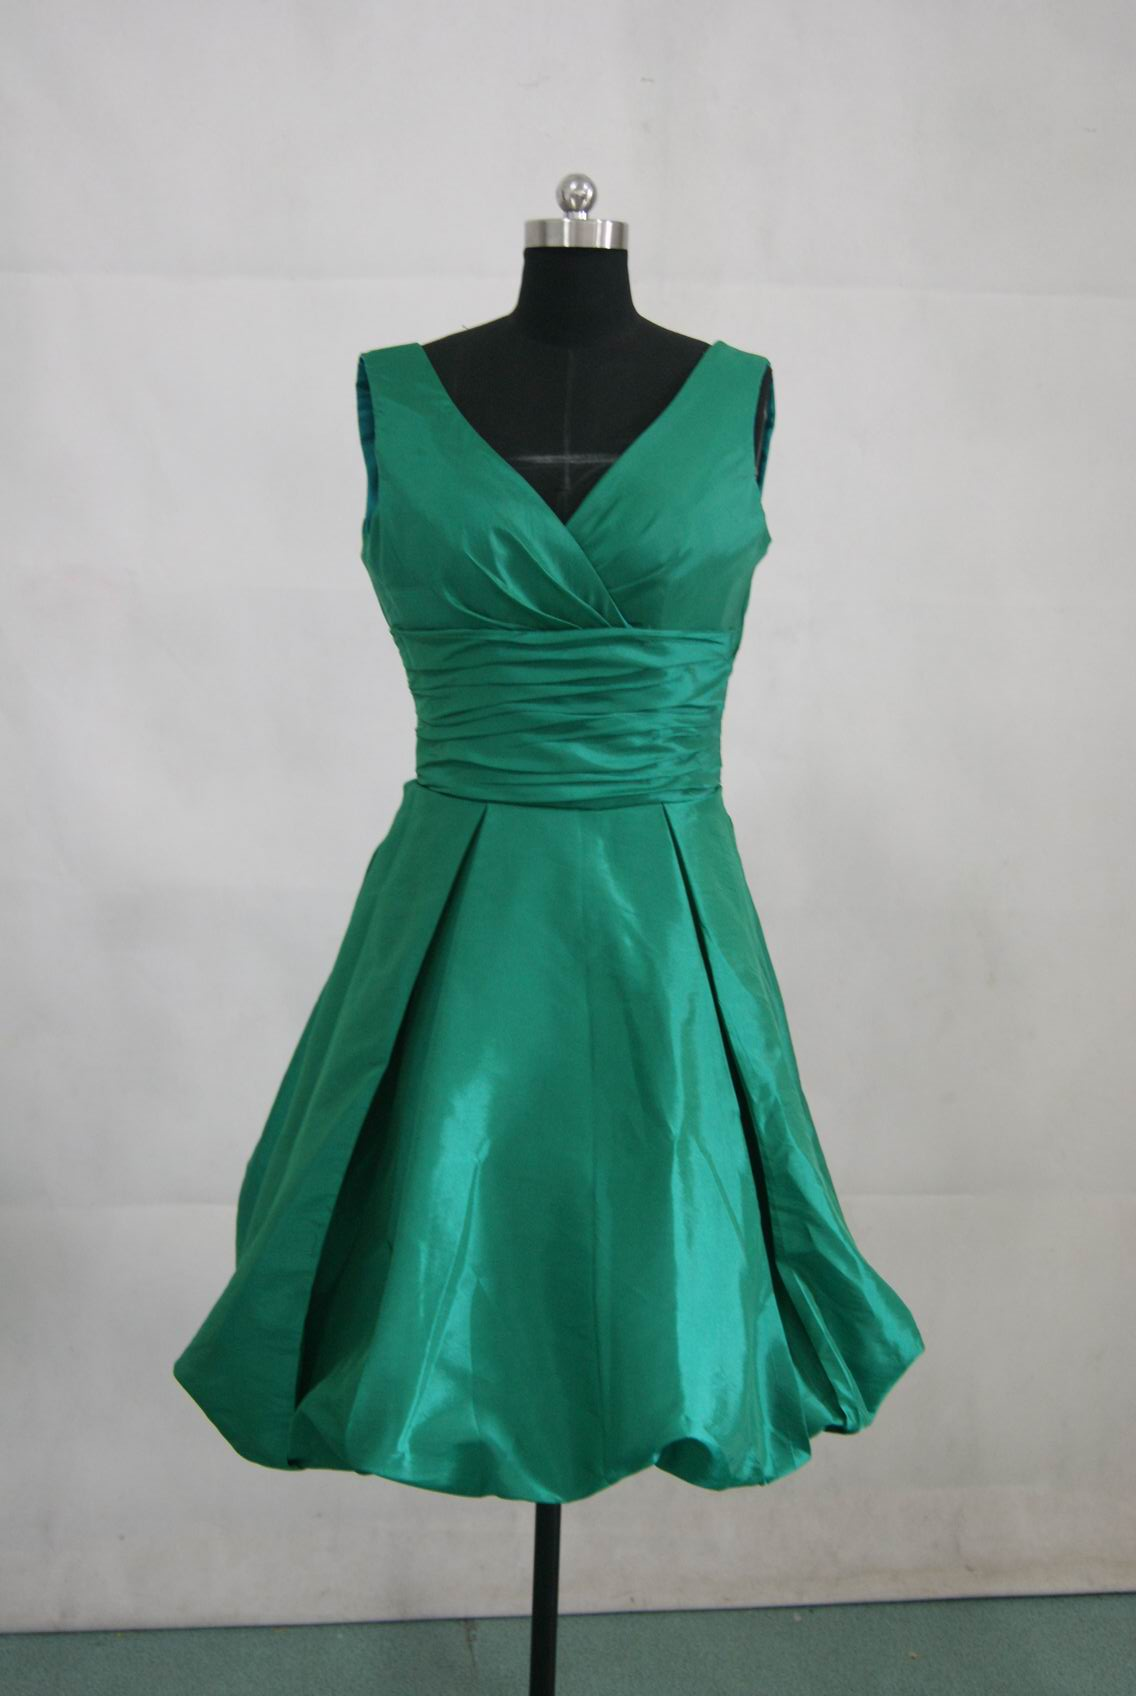 Slytherin bridesmaid dress my harry potter wedding for Short green wedding dresses